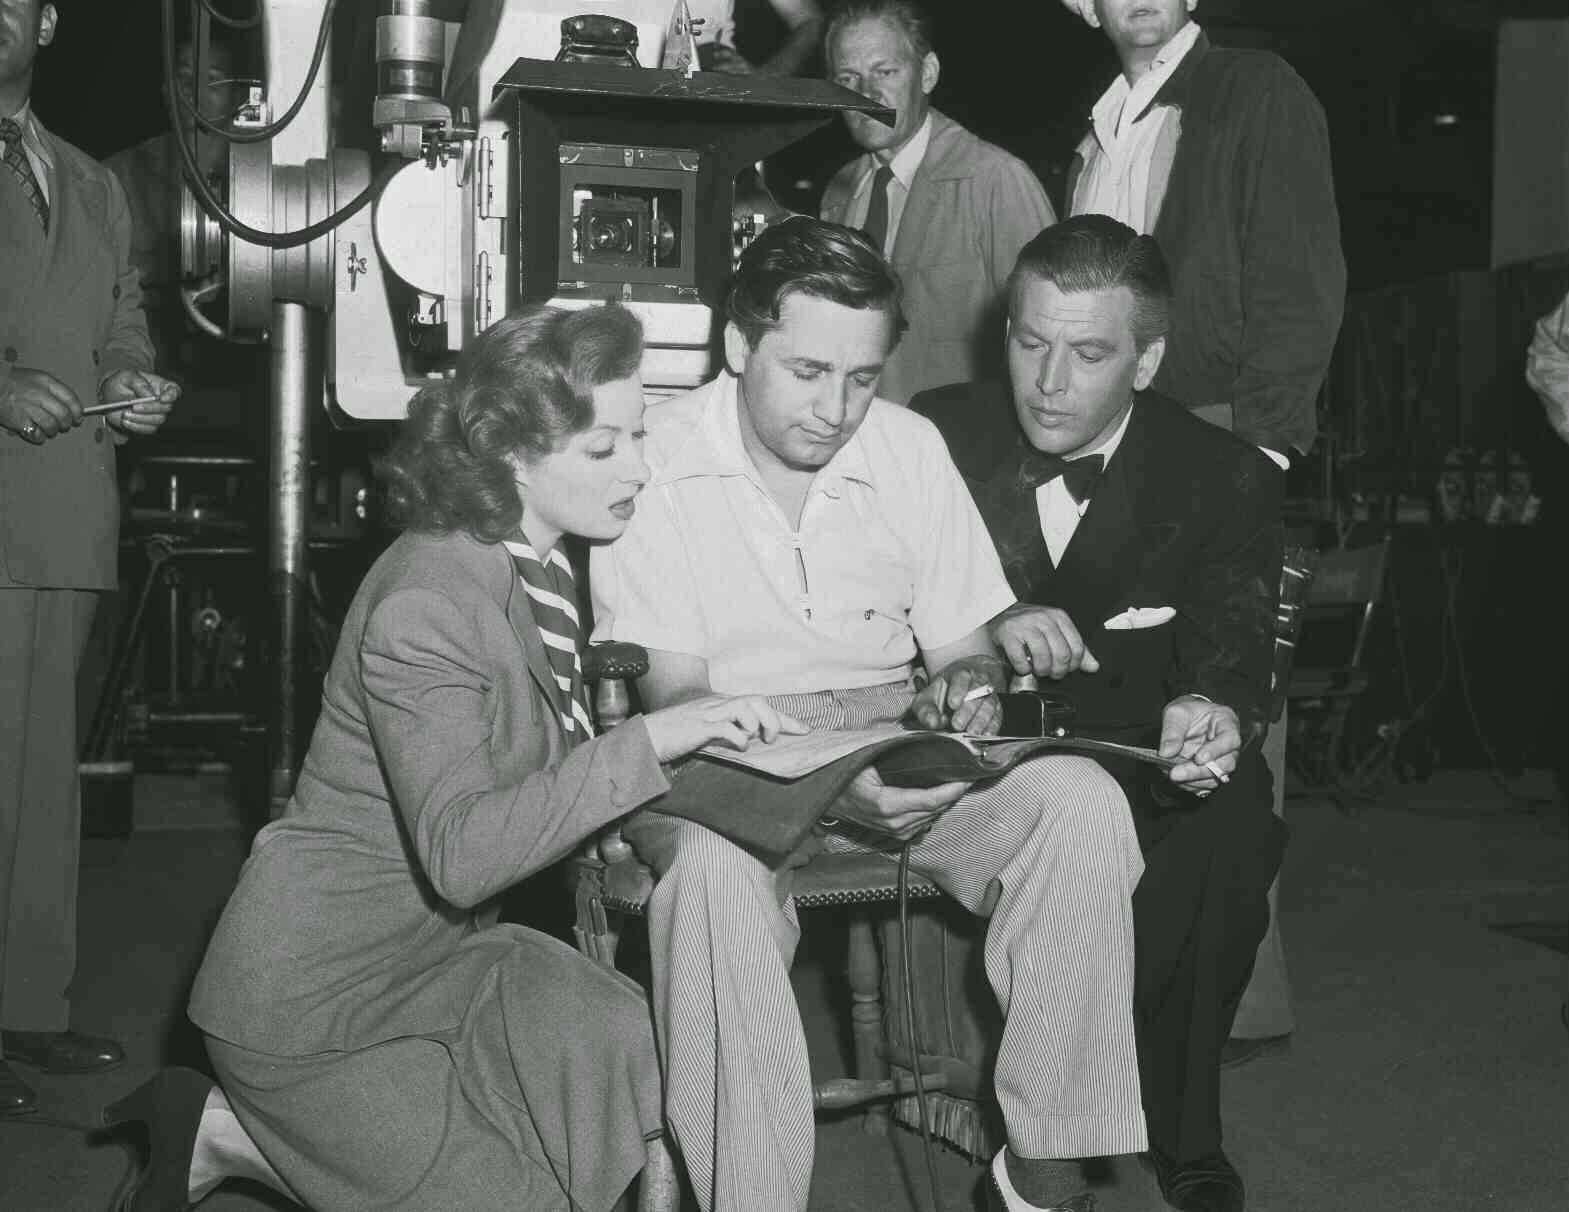 Garson And LeRoy (center) Behind The Scenes